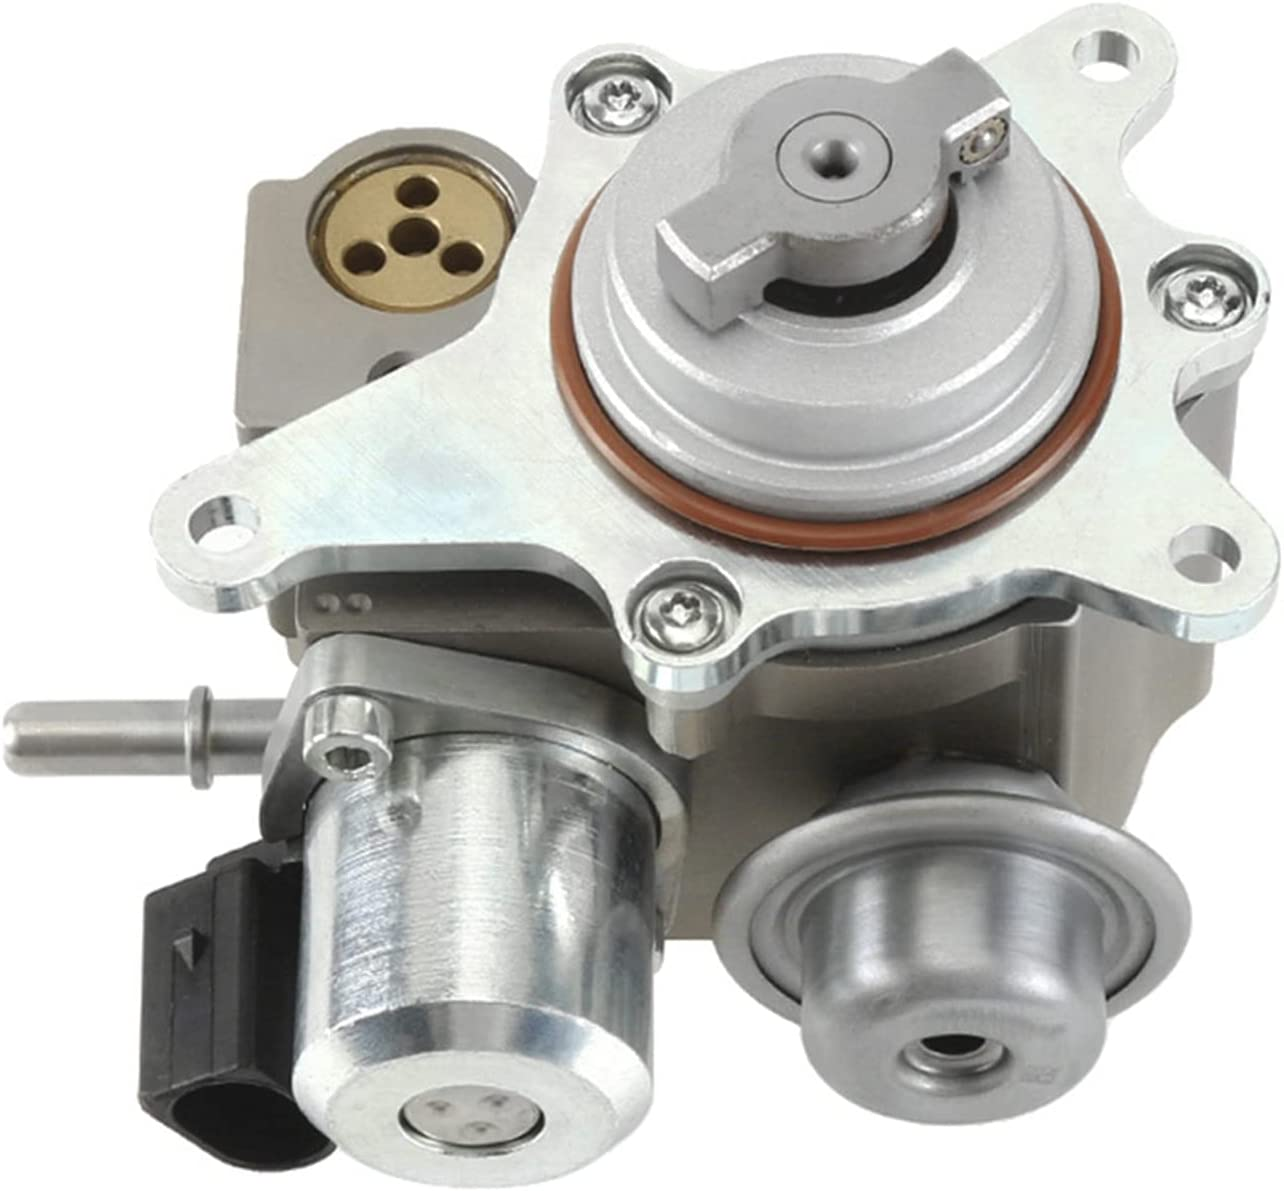 ZhuFengshop 1 All stores are sold Pcs Refurbished High Fuel Pump 9819938480 Clearance SALE! Limited time! Pressure